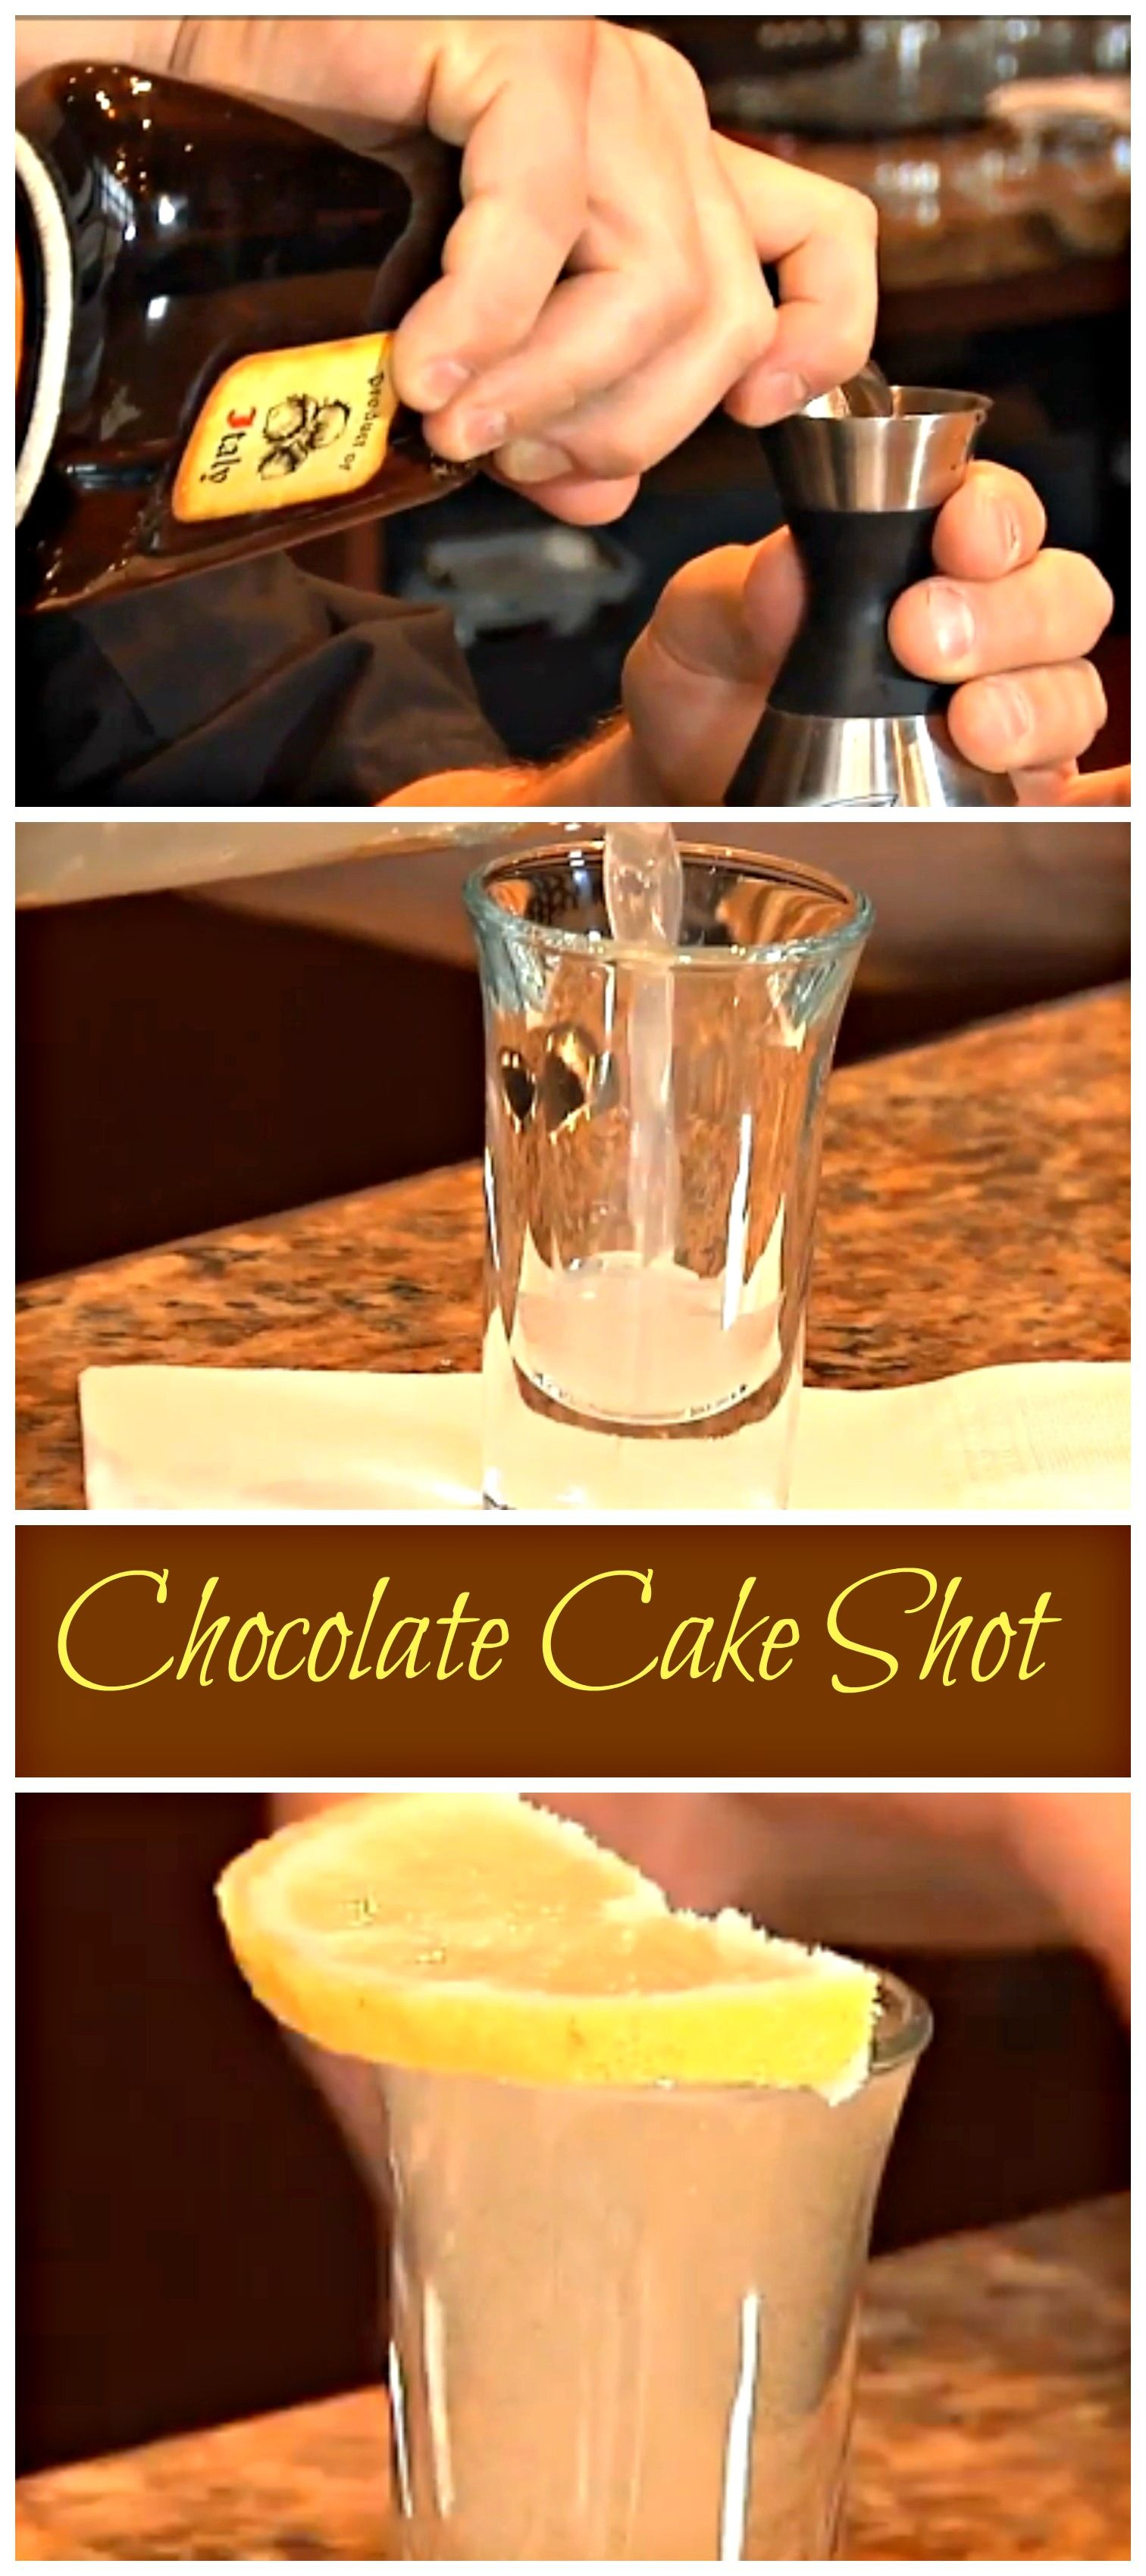 Chocolate Cake Shot! Have your cake and drink it too with this ...